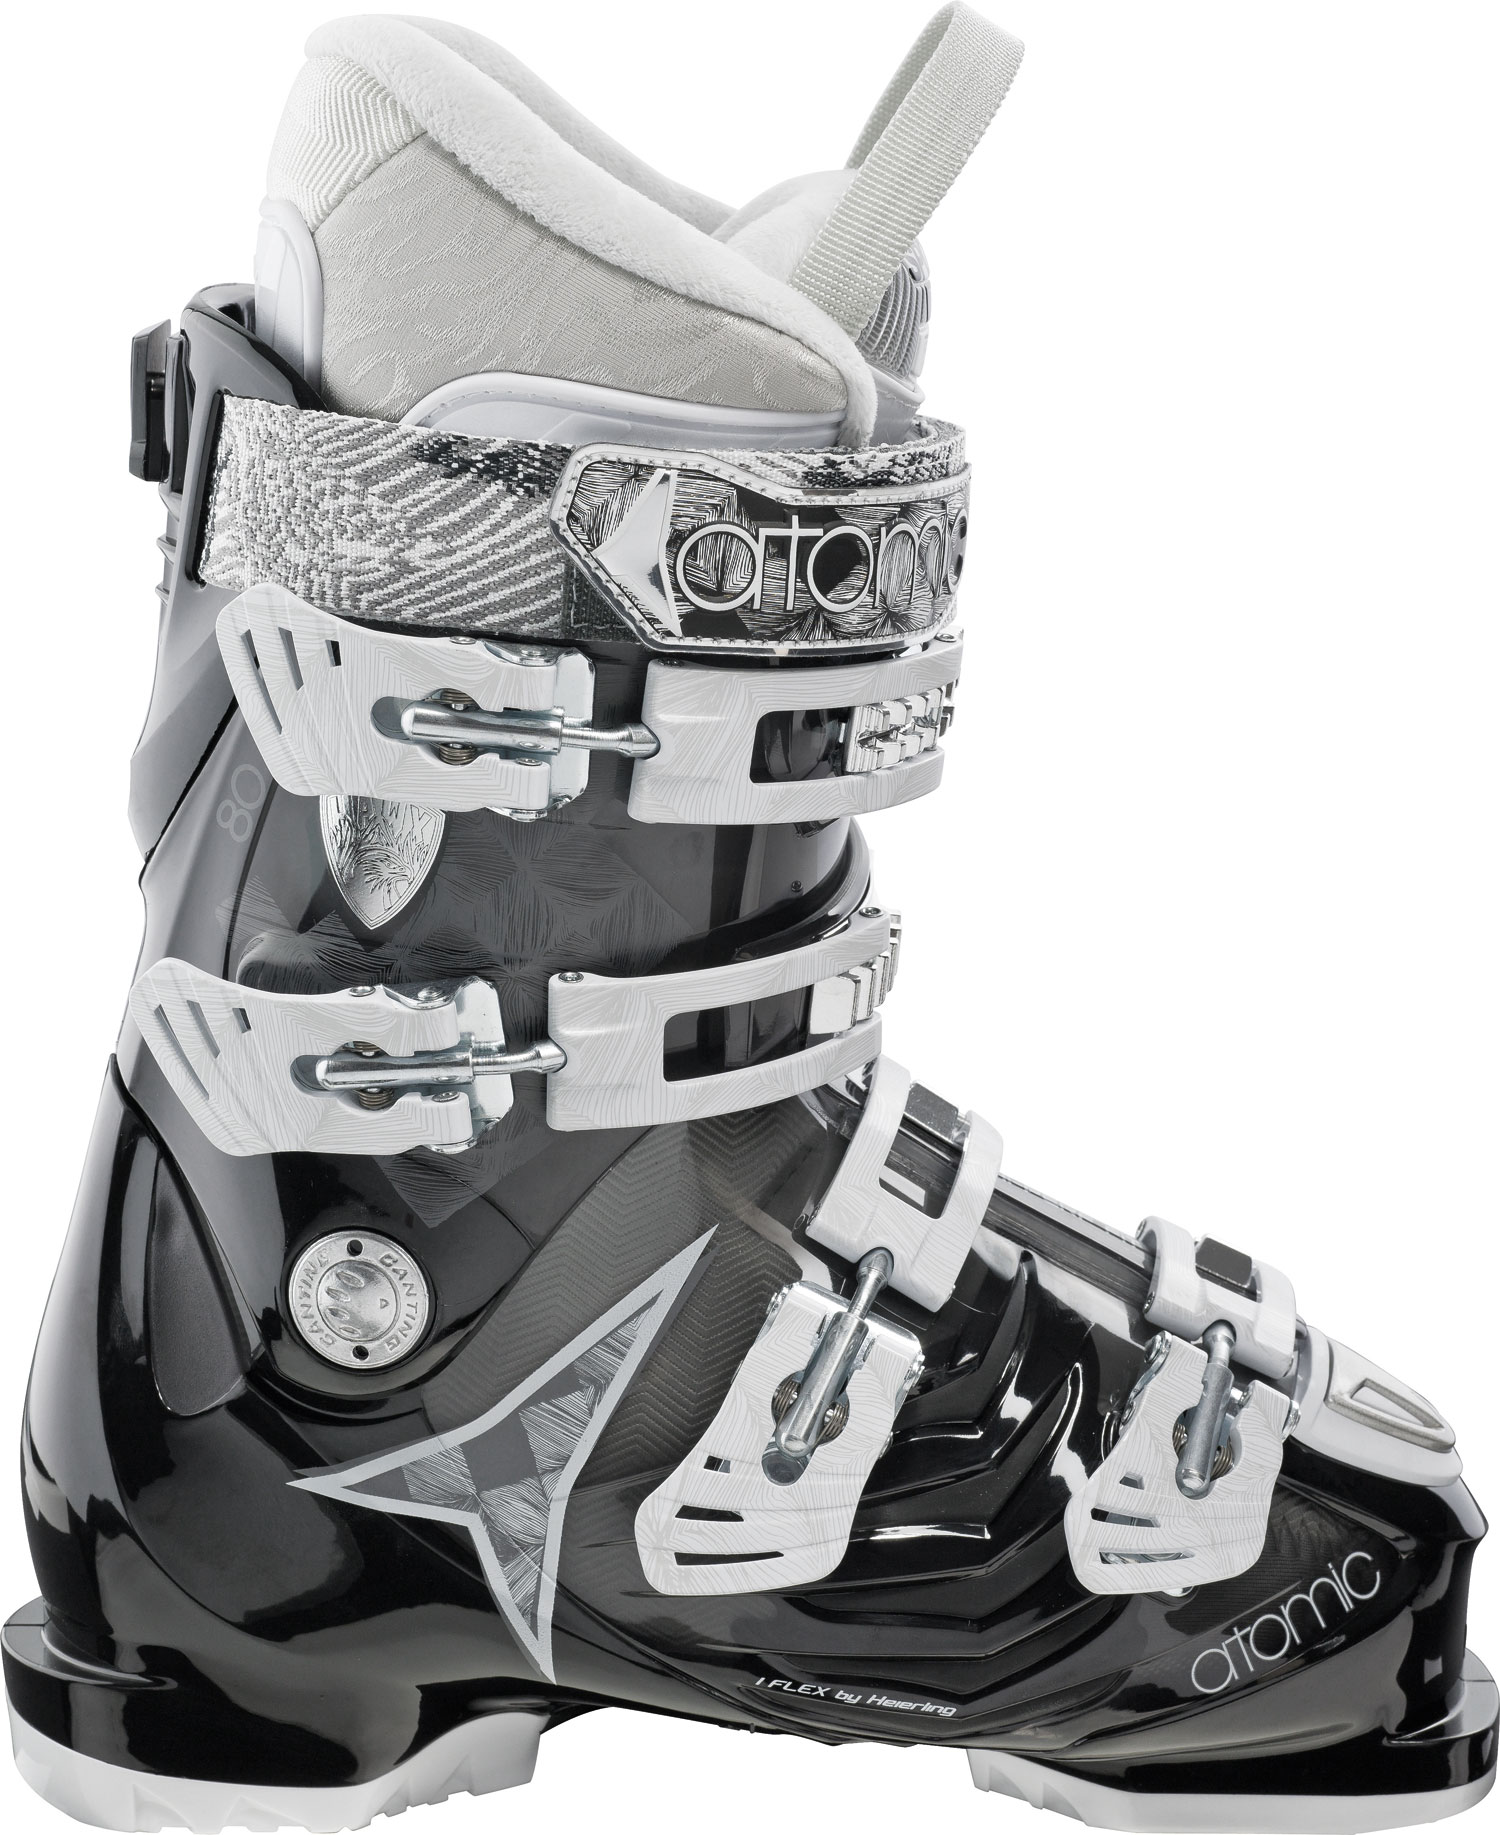 Ski Key Features of the Atomic Hawx 80 Ski Boots: 80 Flex Edge 7000 buckle 35mm strap ASY Sport T1 liner + Clima Foam Medium Fit Soft Flex - $241.95